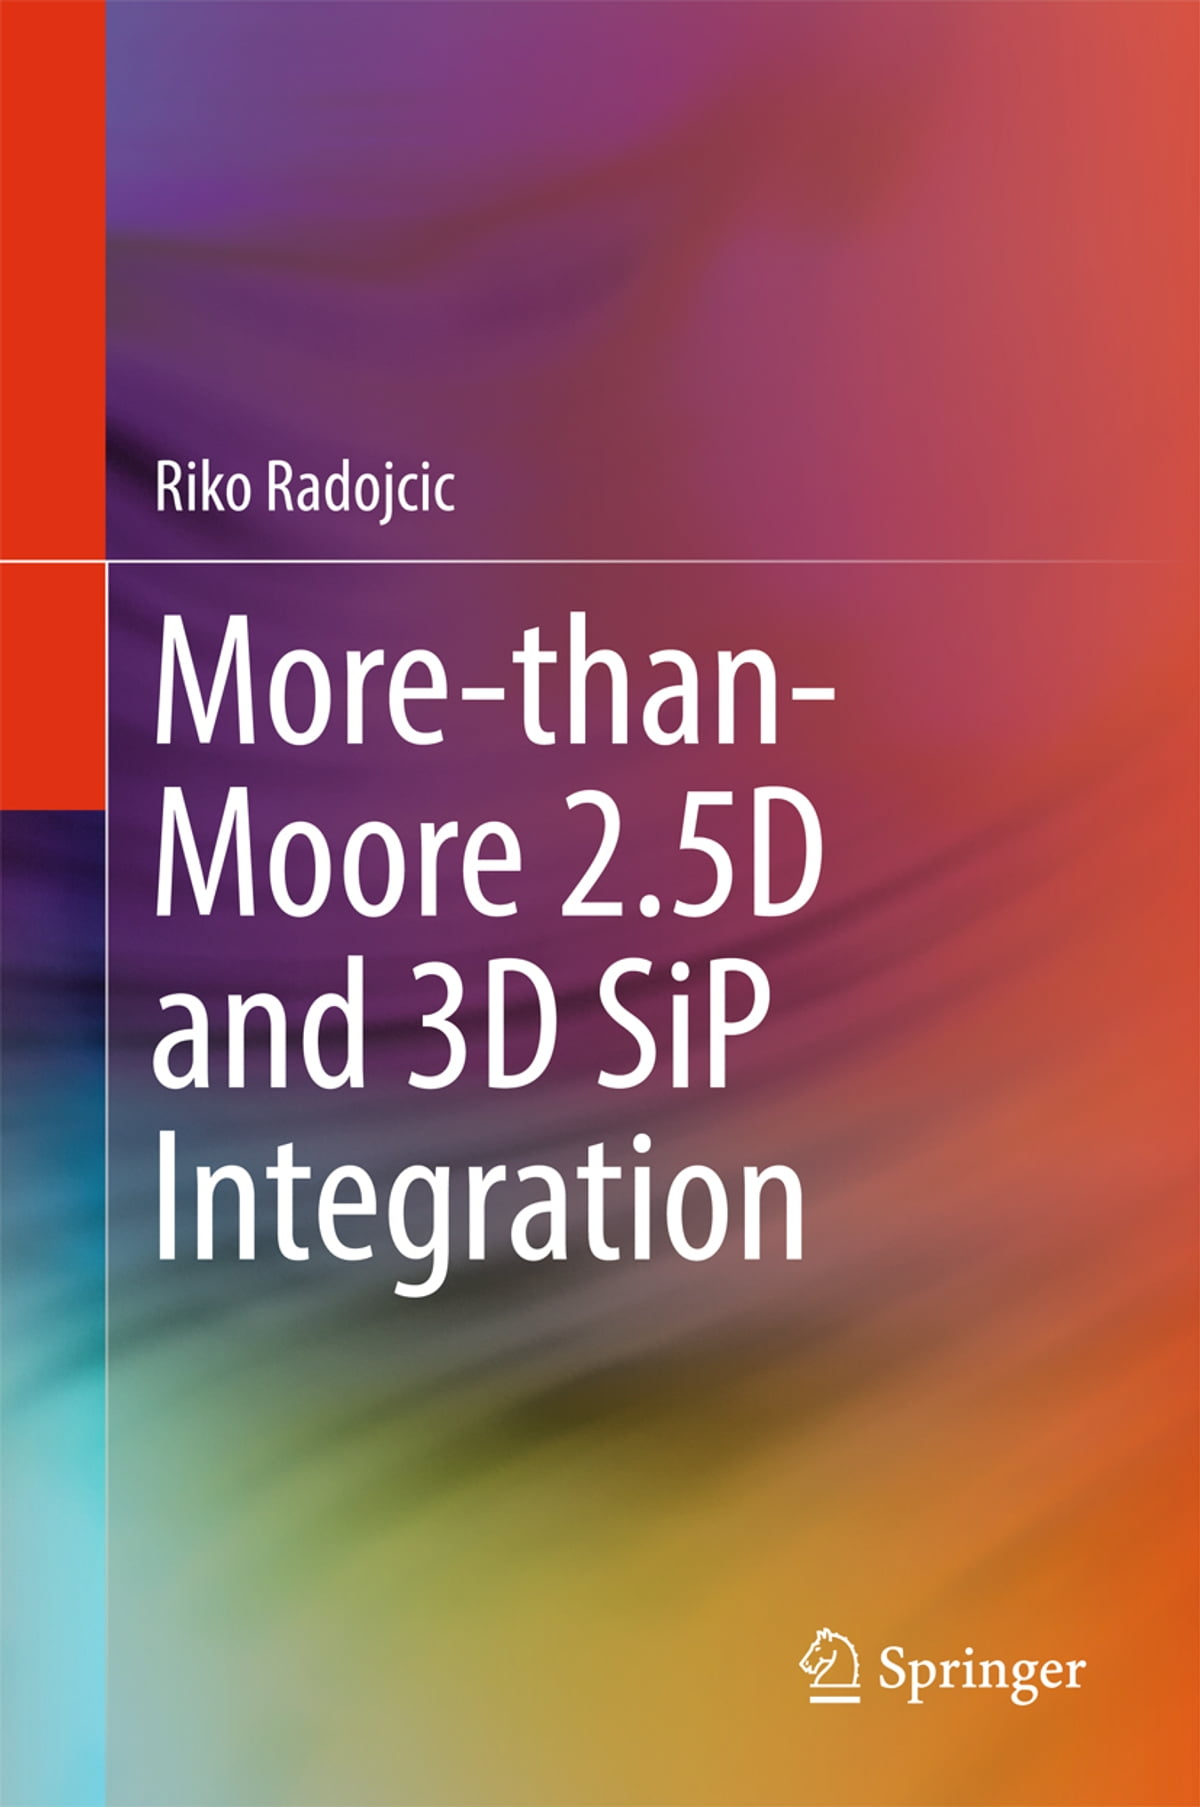 More-than-Moore 2 5D and 3D SiP Integration ebook by Riko Radojcic -  Rakuten Kobo